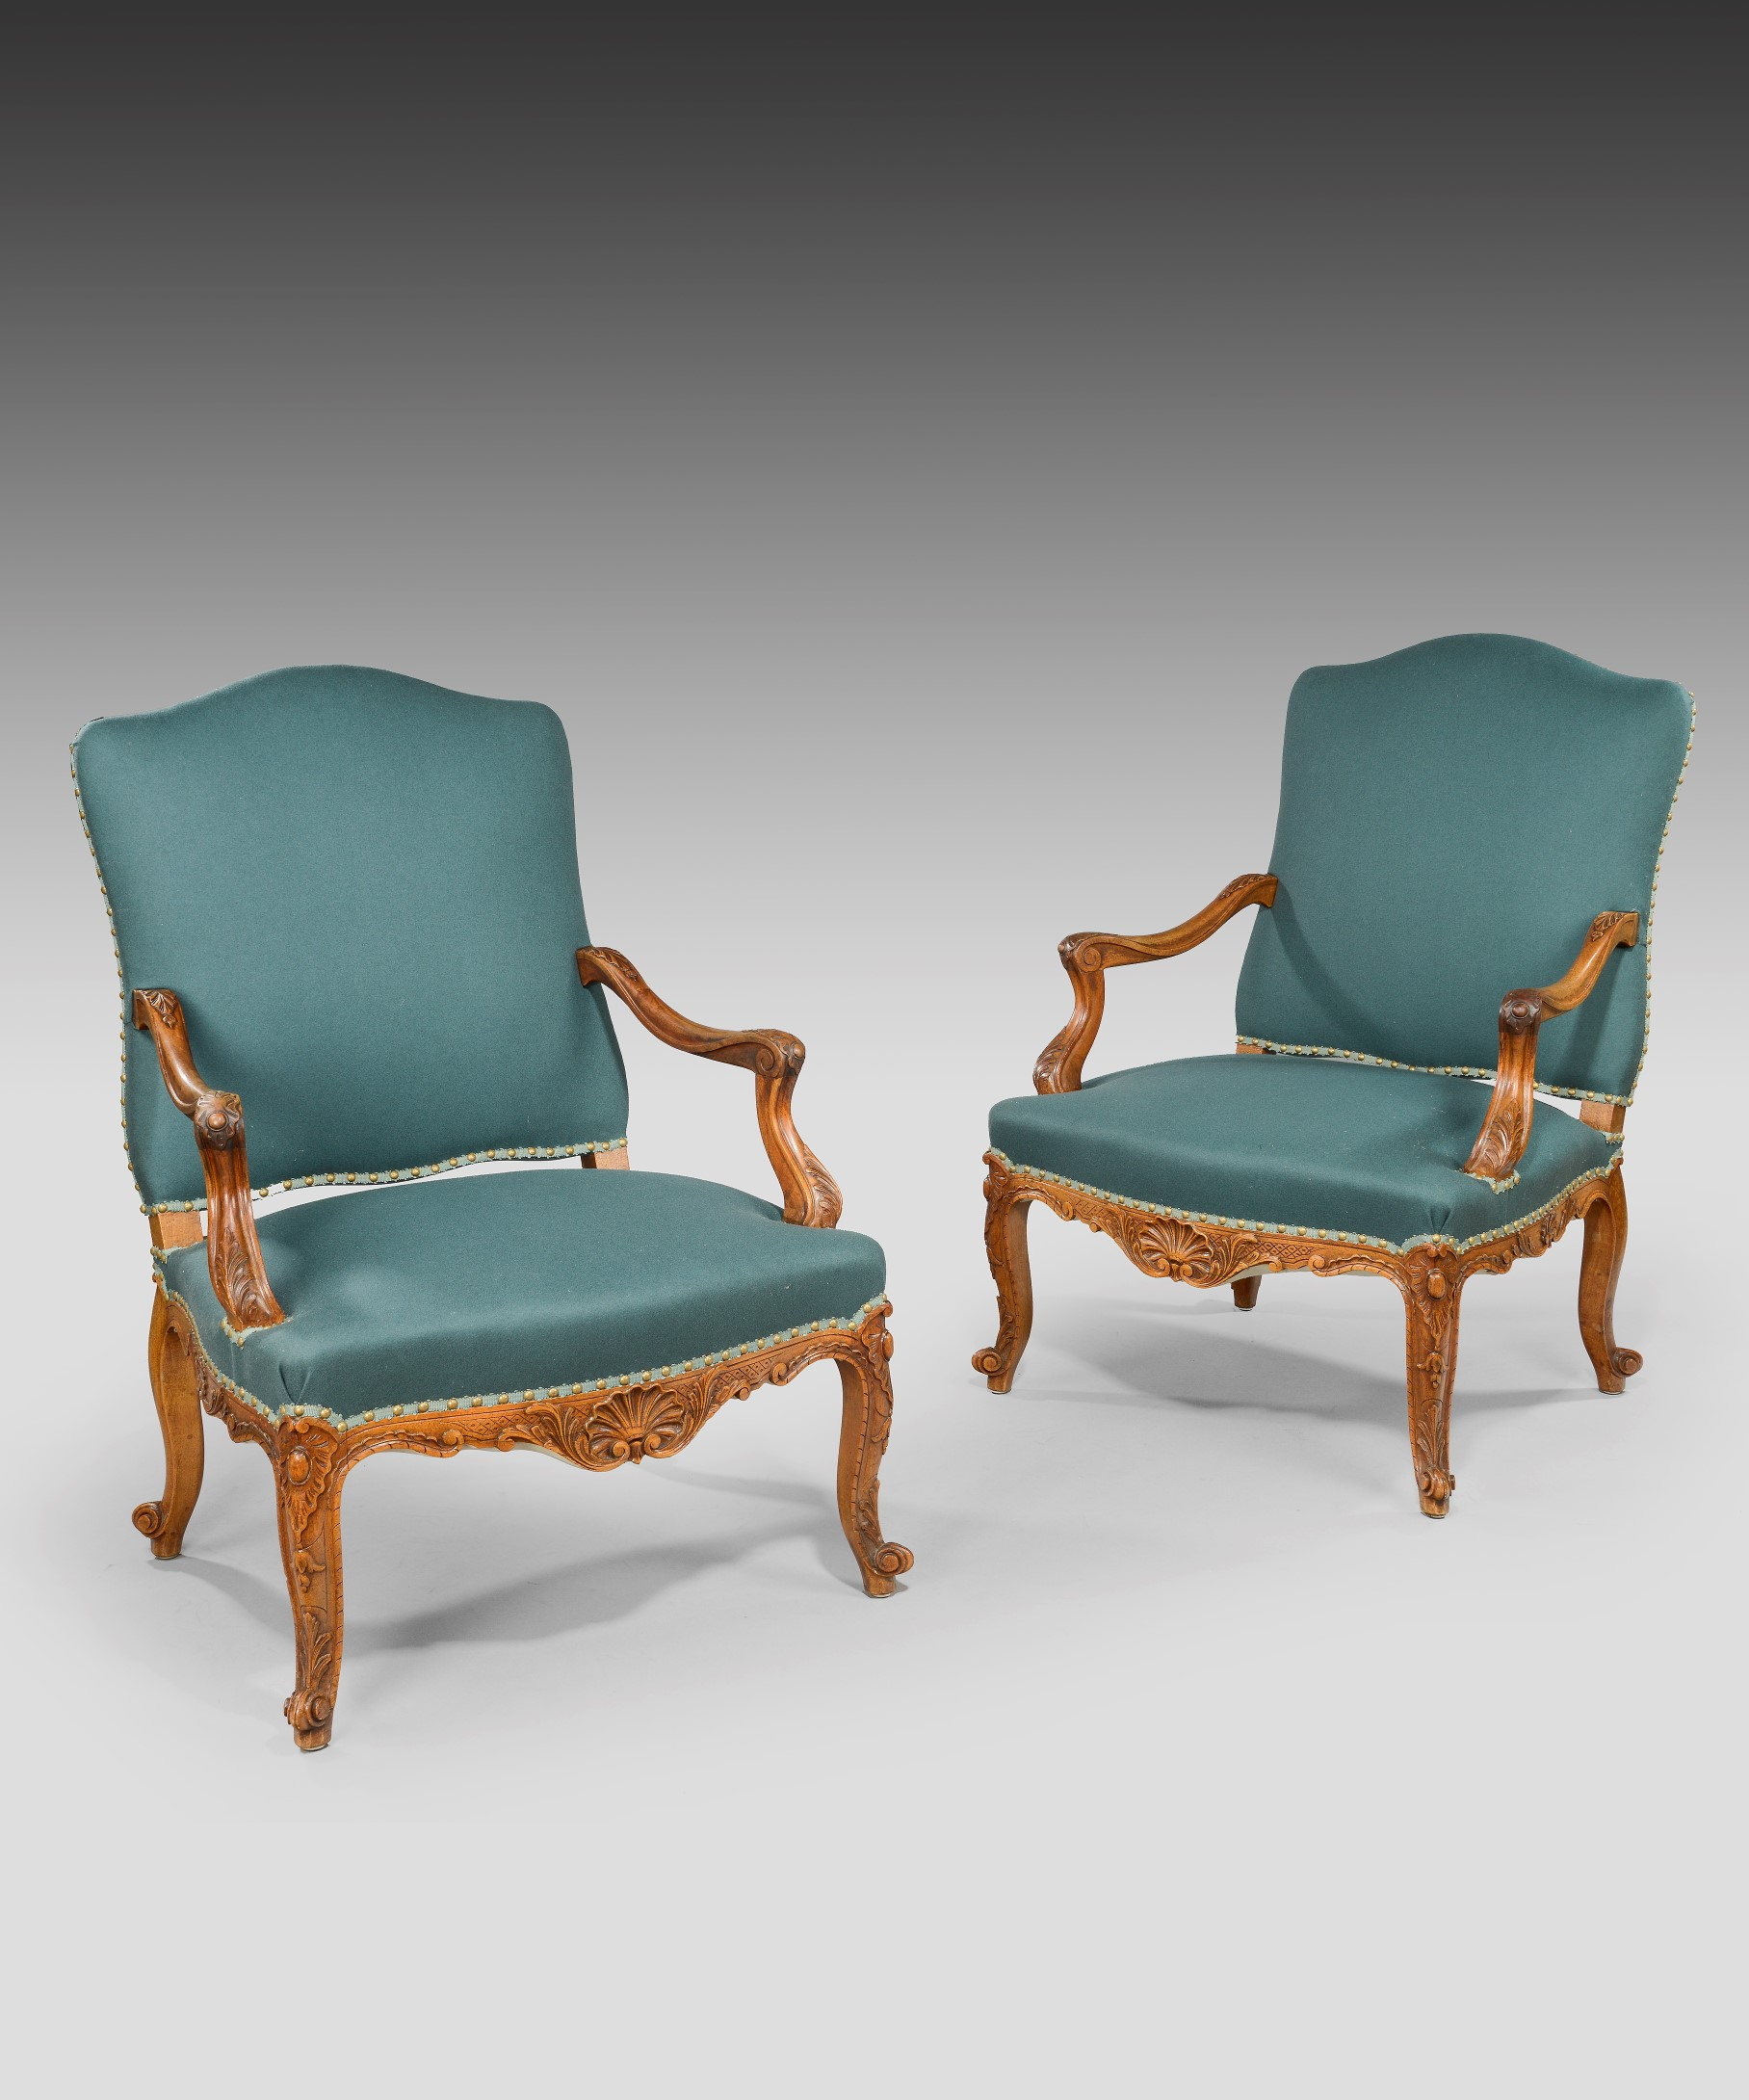 Louis xv french furniture reindeer antiques for Sofas tipo ingles